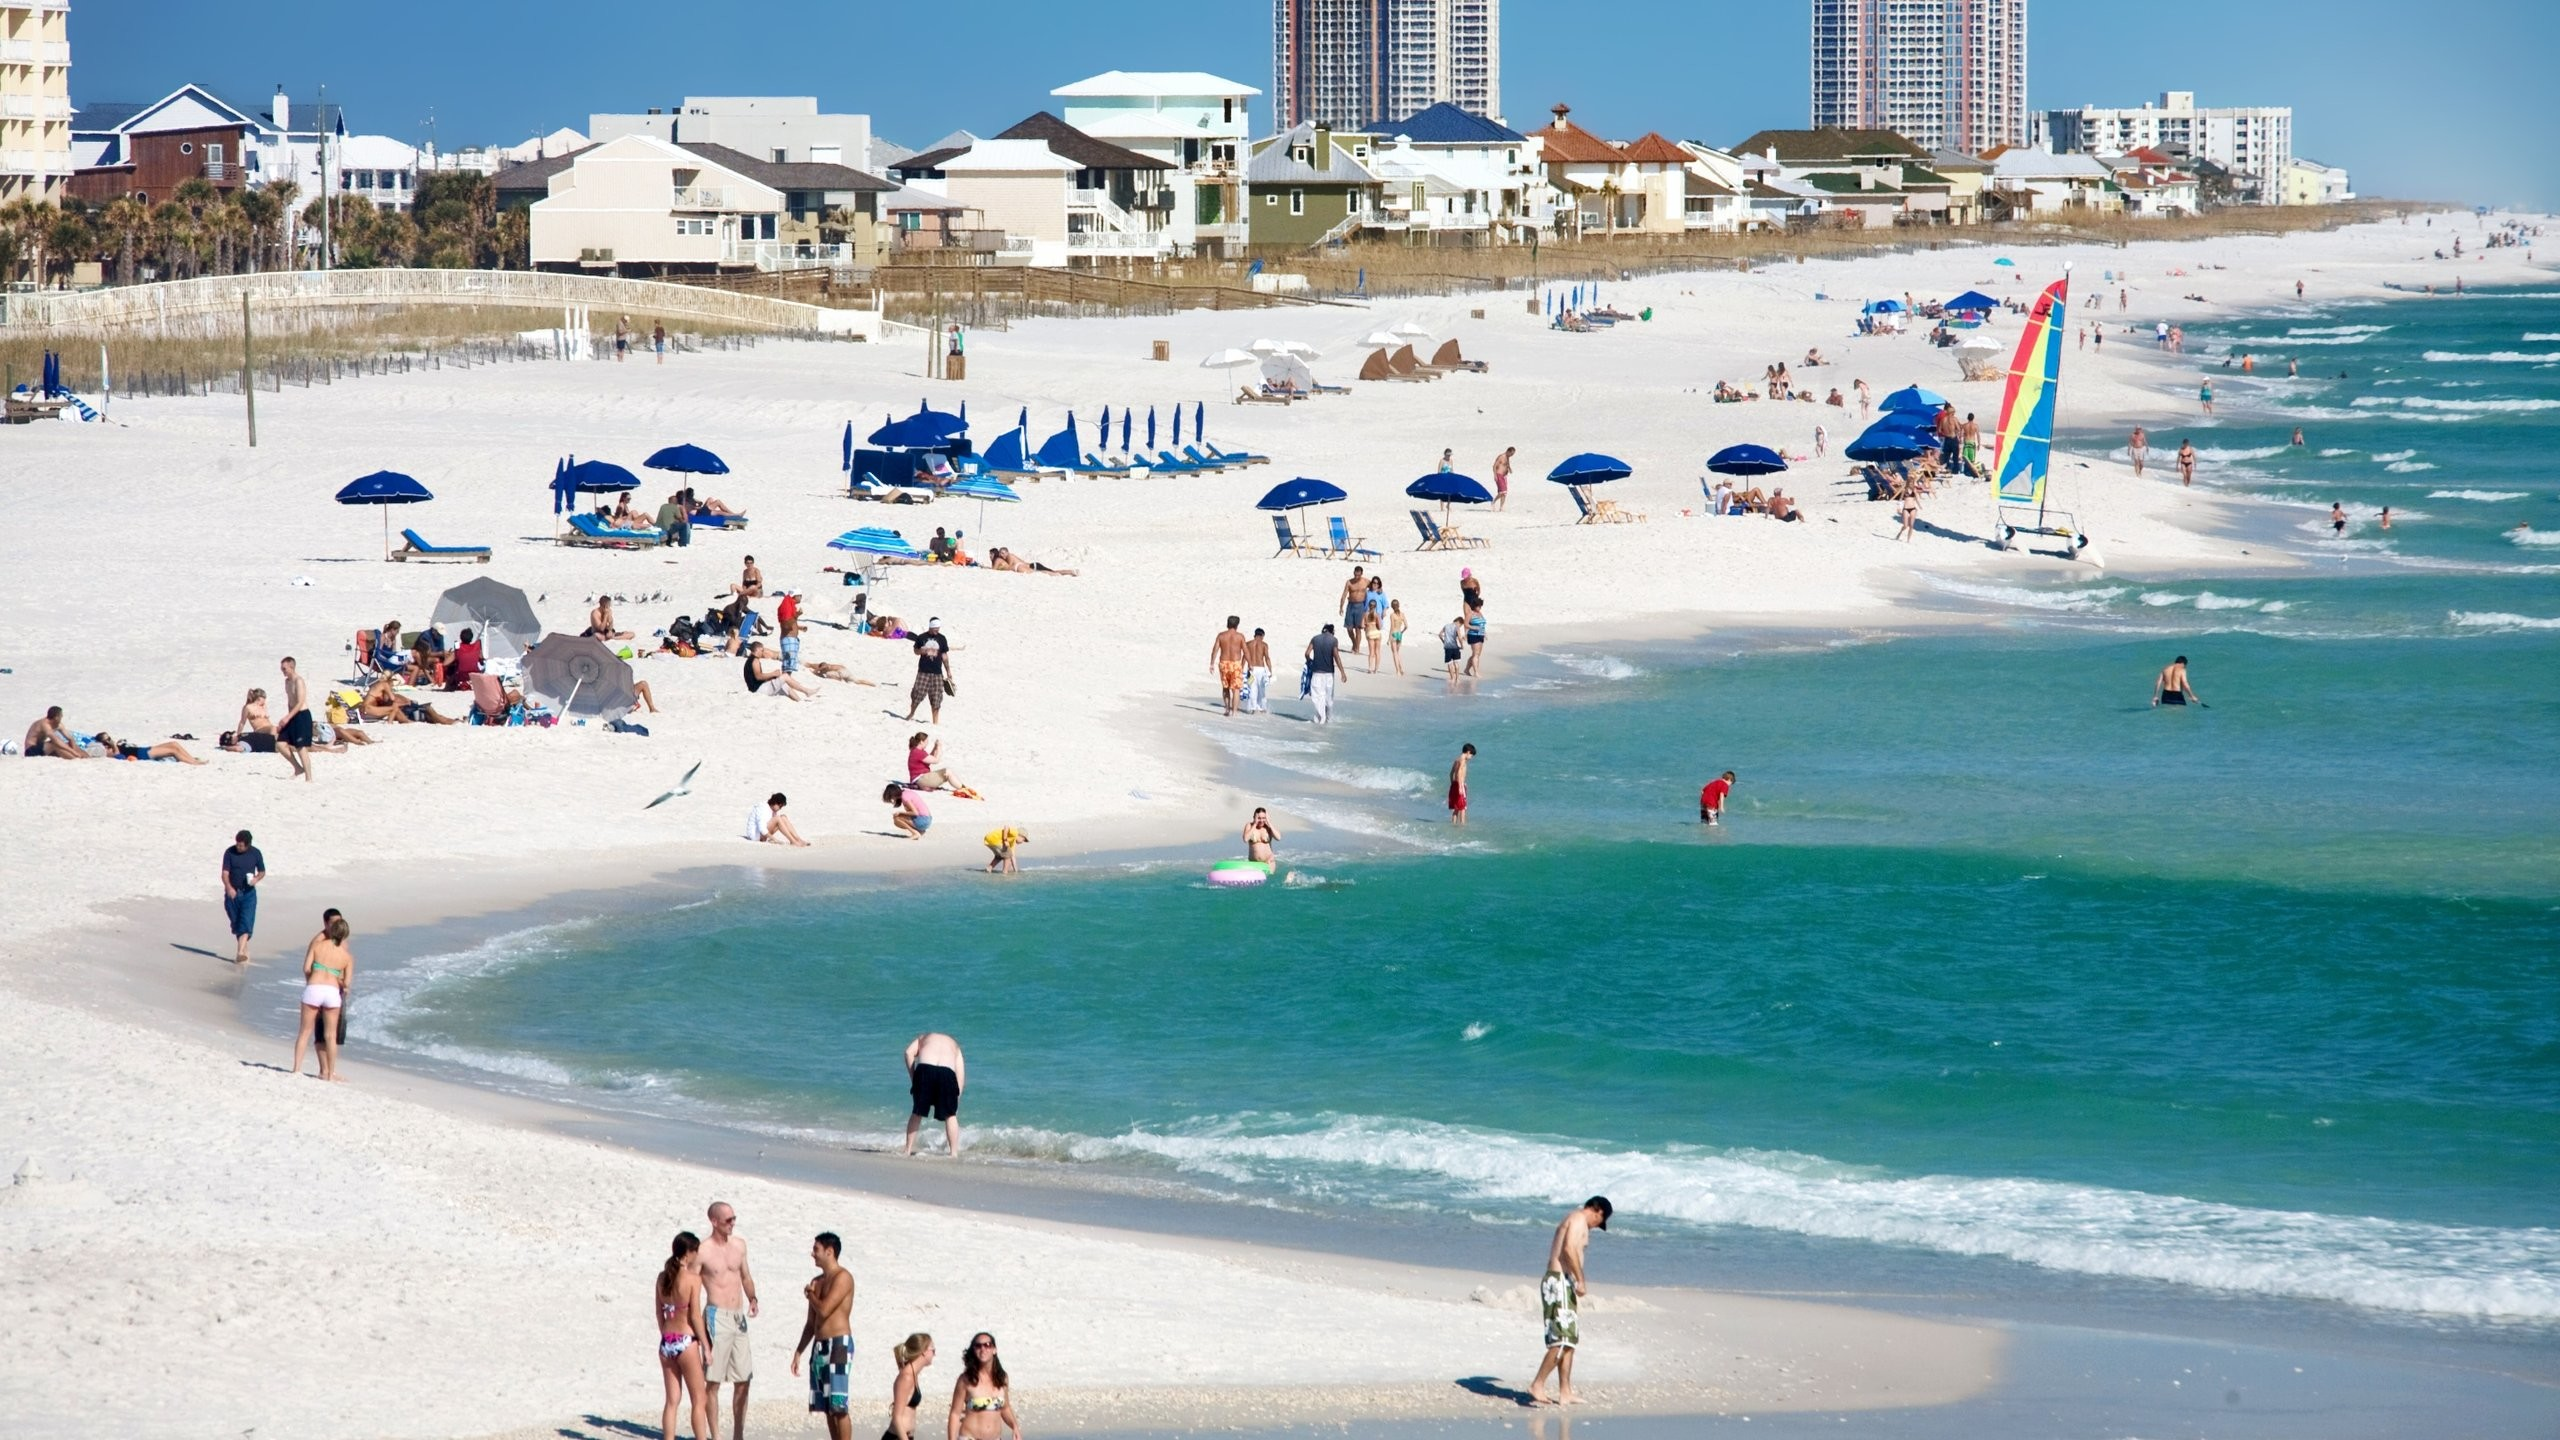 2560x1440 Top 10 Hotels with Free Breakfast in Pensacola, FL $79: Complimentary  Breakfast Included